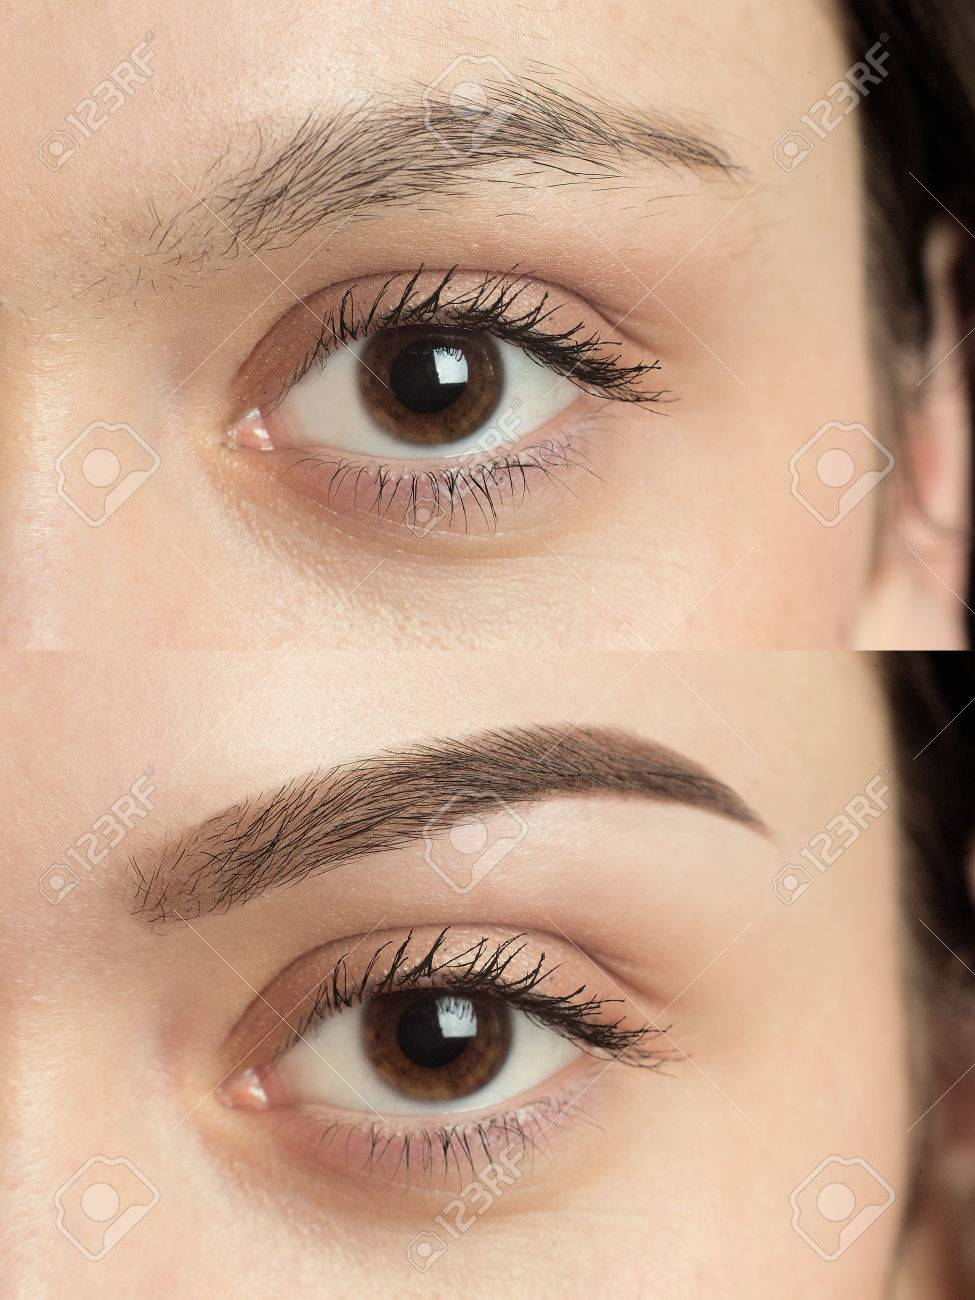 Perfect Eyebrows Before After. Two Photos Of Eyes, Eyebrows Before ...